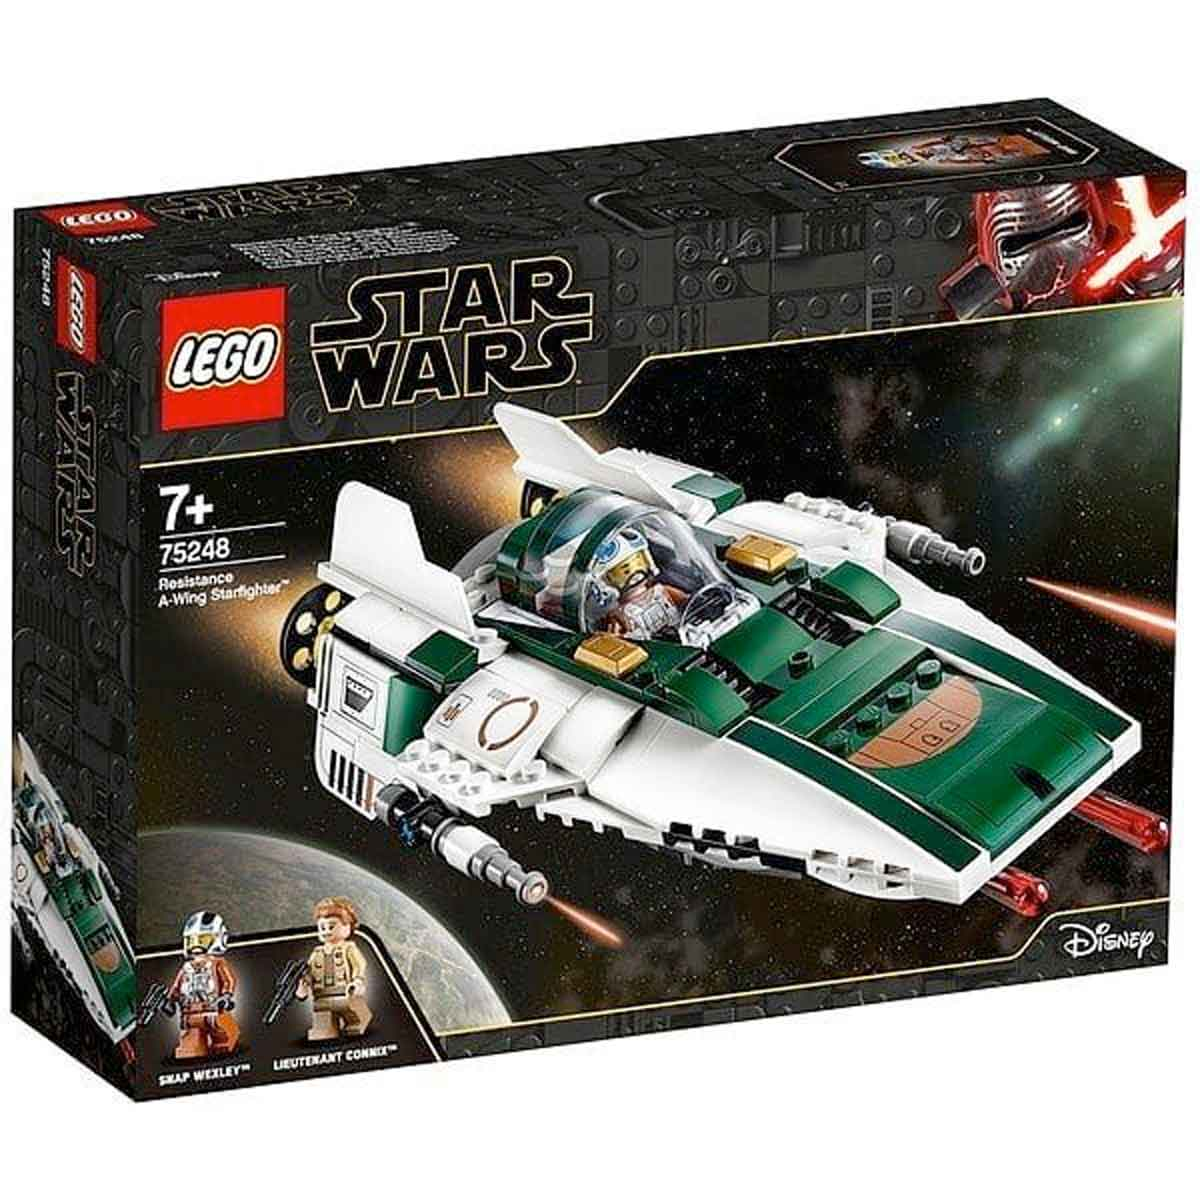 SPOILERS de LEGO de Star Wars: El ascenso de Skywalker